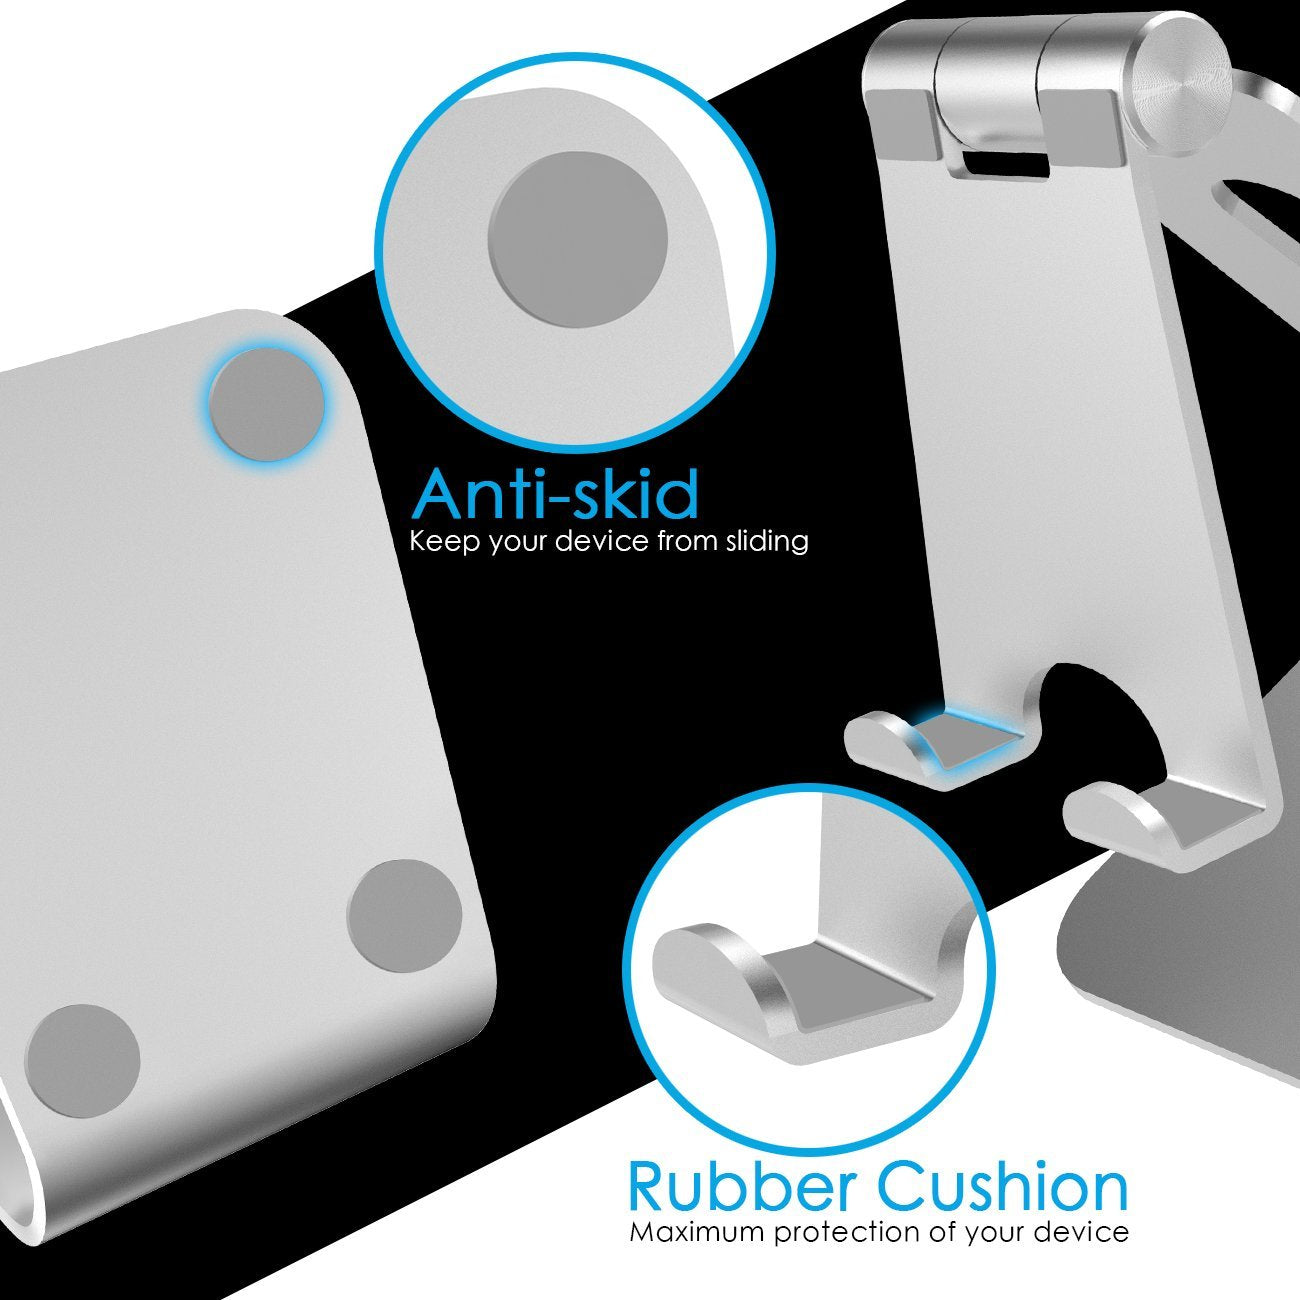 Adjustable Anti Skid iPad Stand Safe Way Traction Rubber Cushion Grip Non Slip Safety Cell Phone Tablets